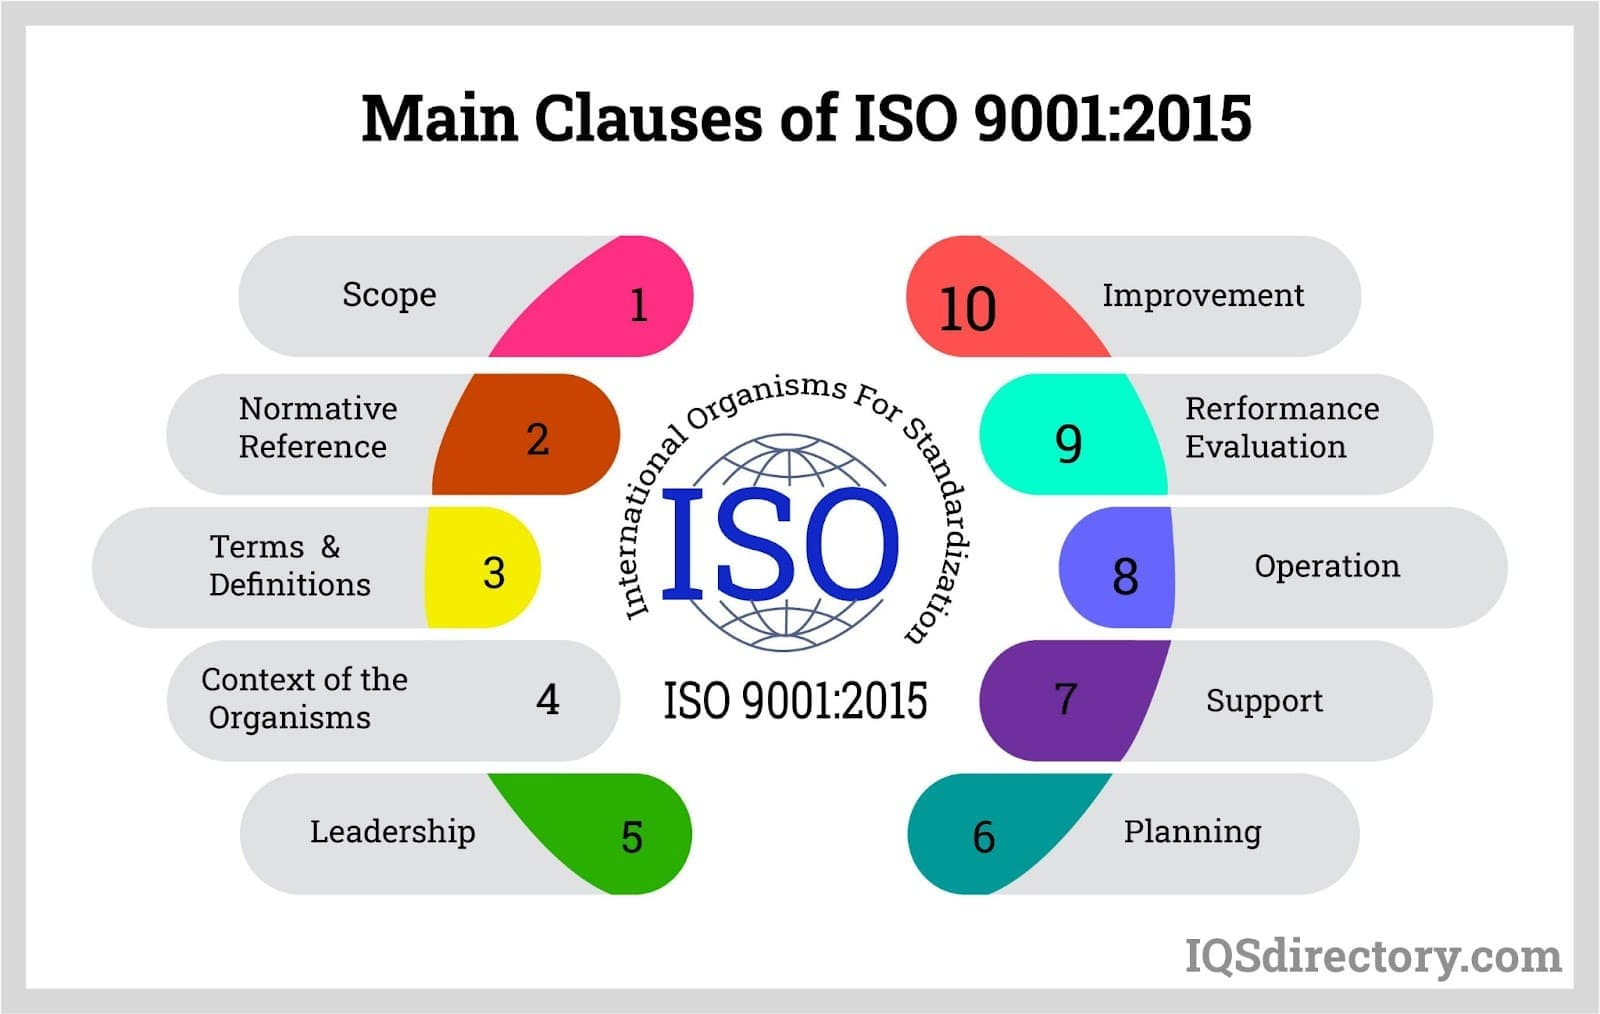 Main Clauses of ISO 9001:2015